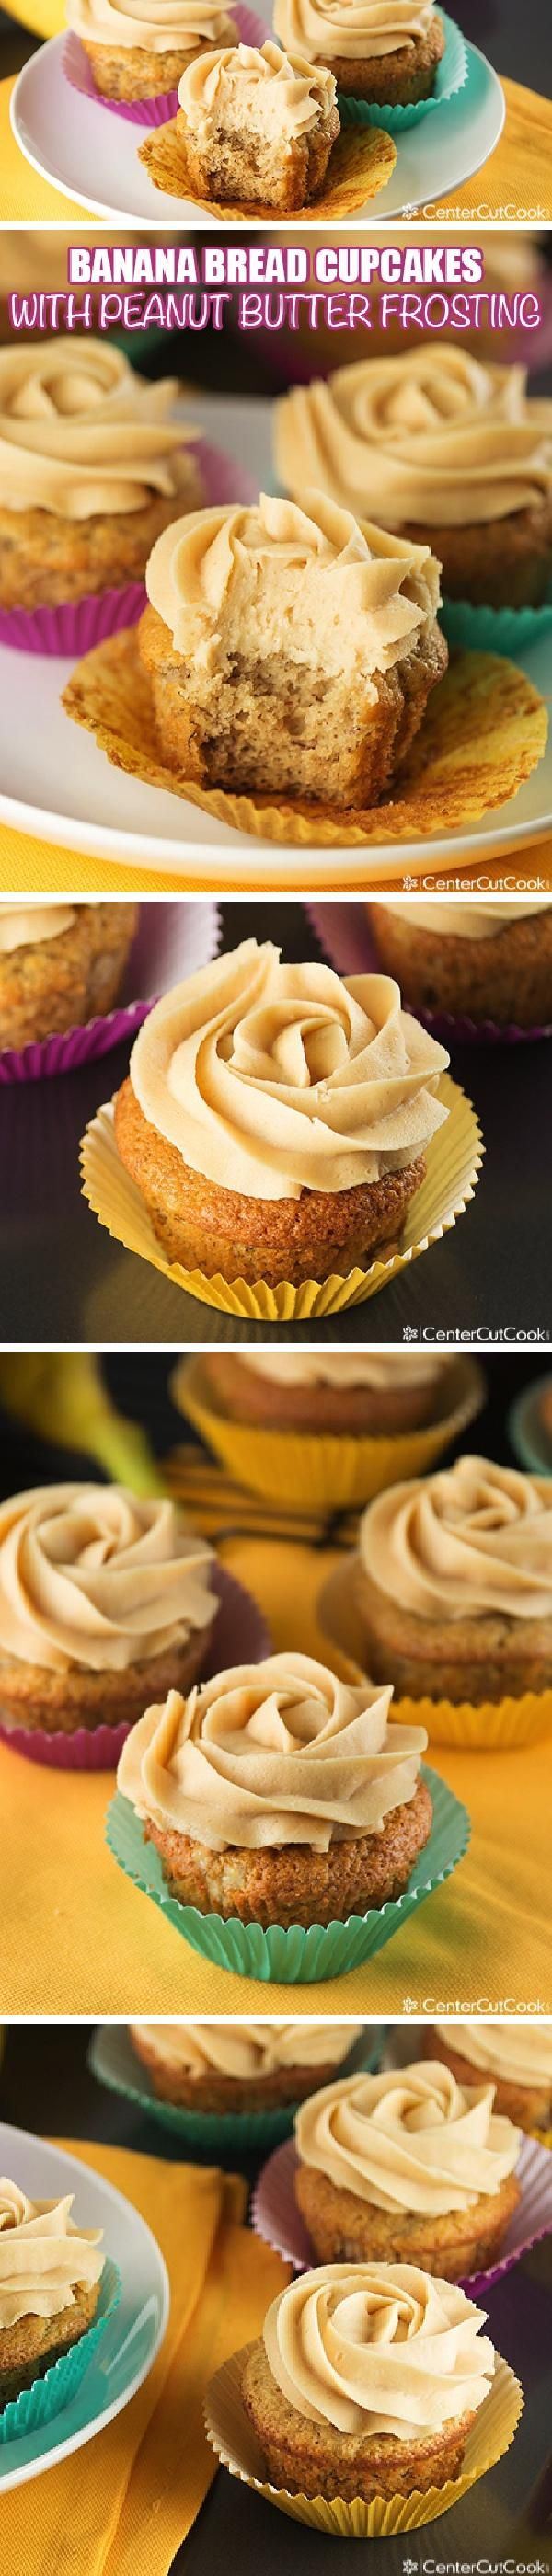 BANANA CUPCAKES with PEANUT BUTTER Cream Cheese FROSTING, made from scratch! An easy recipe that's simple and scrumptious!